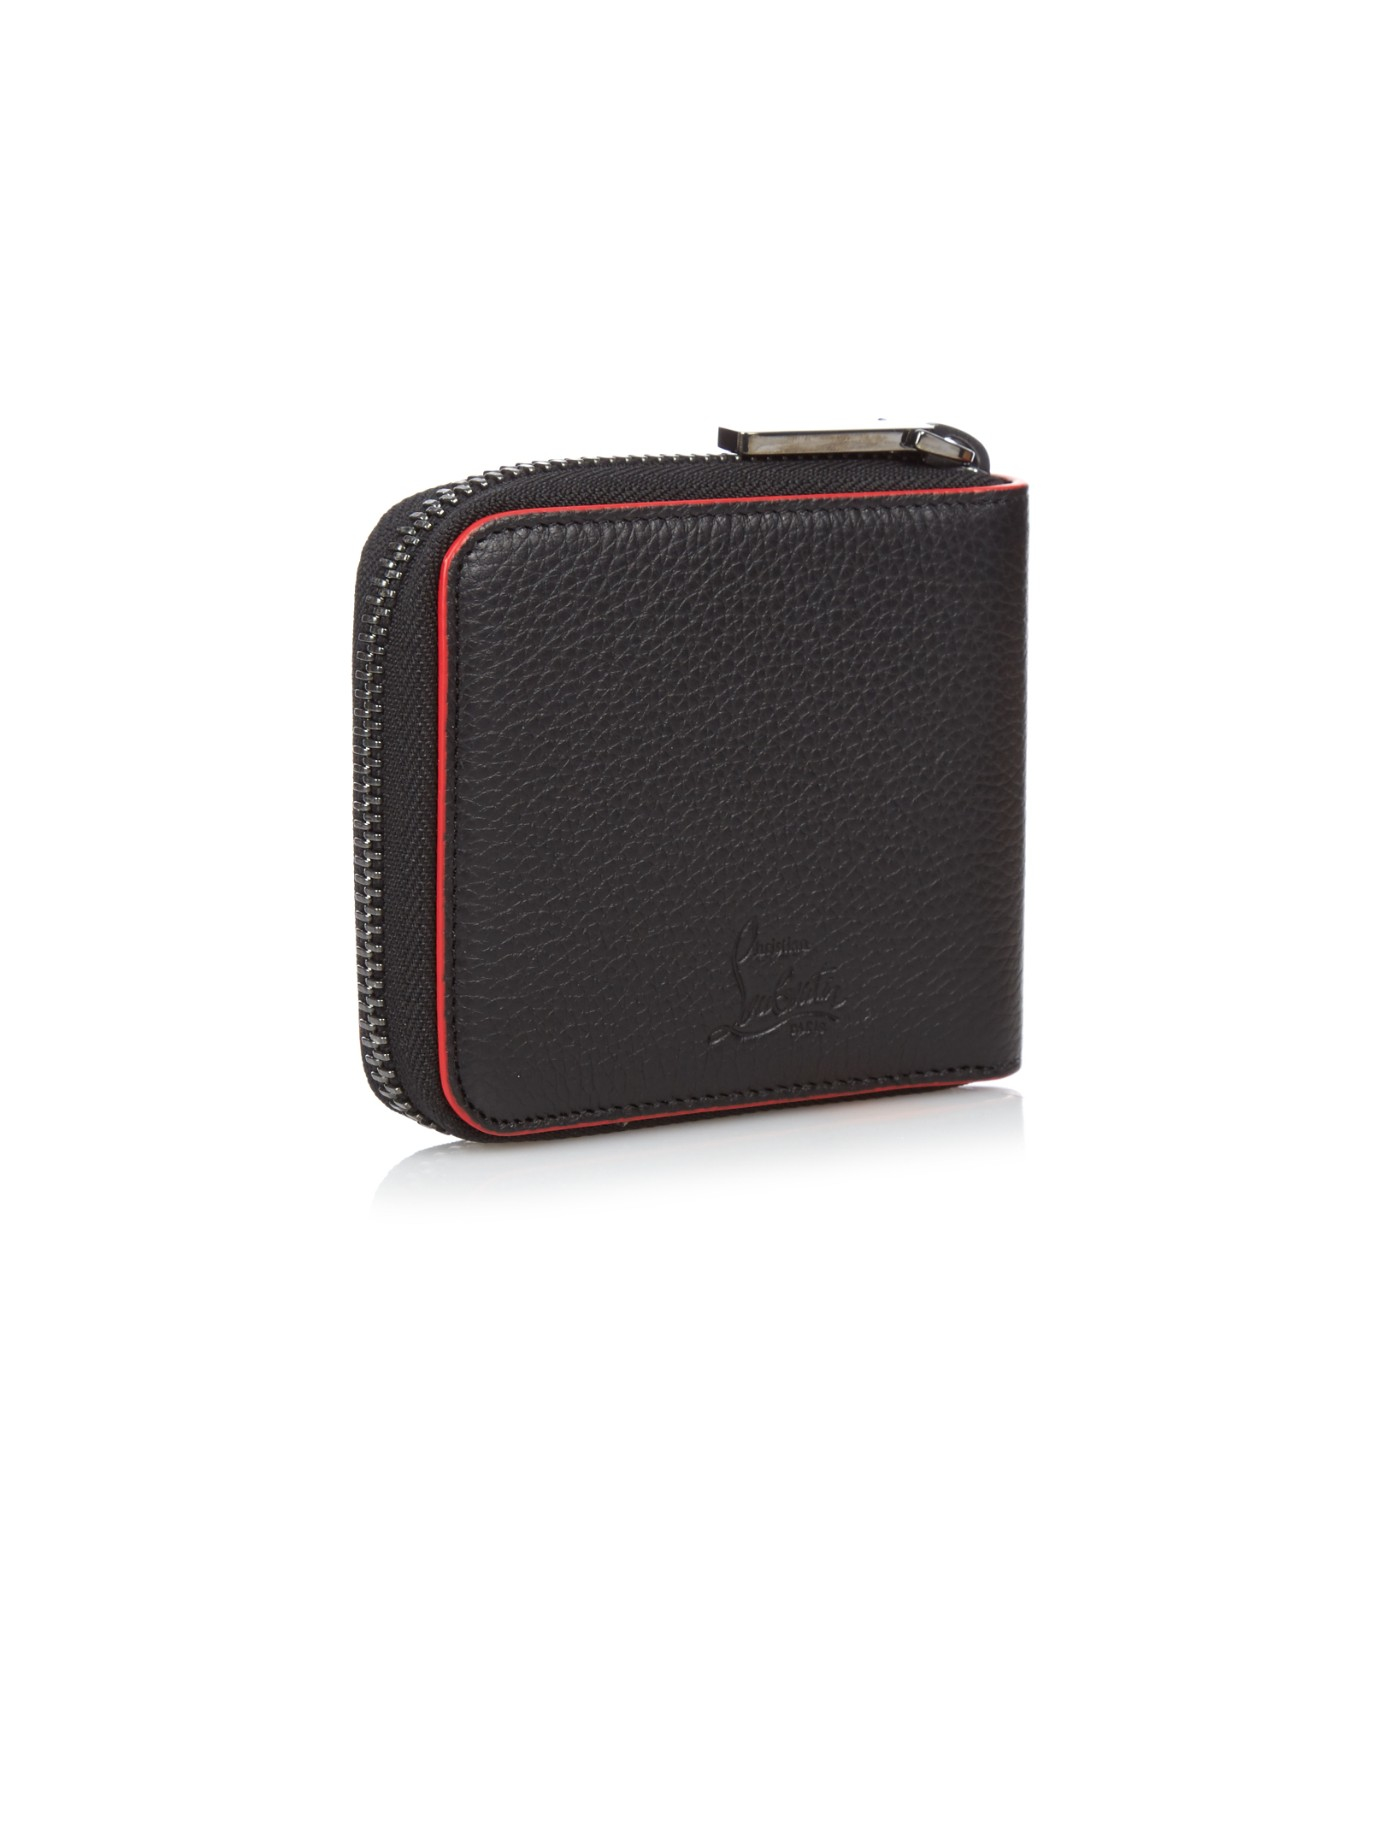 f247c9e2100d Lyst - Christian Louboutin Empire Square Spiked Wallet in Black for Men